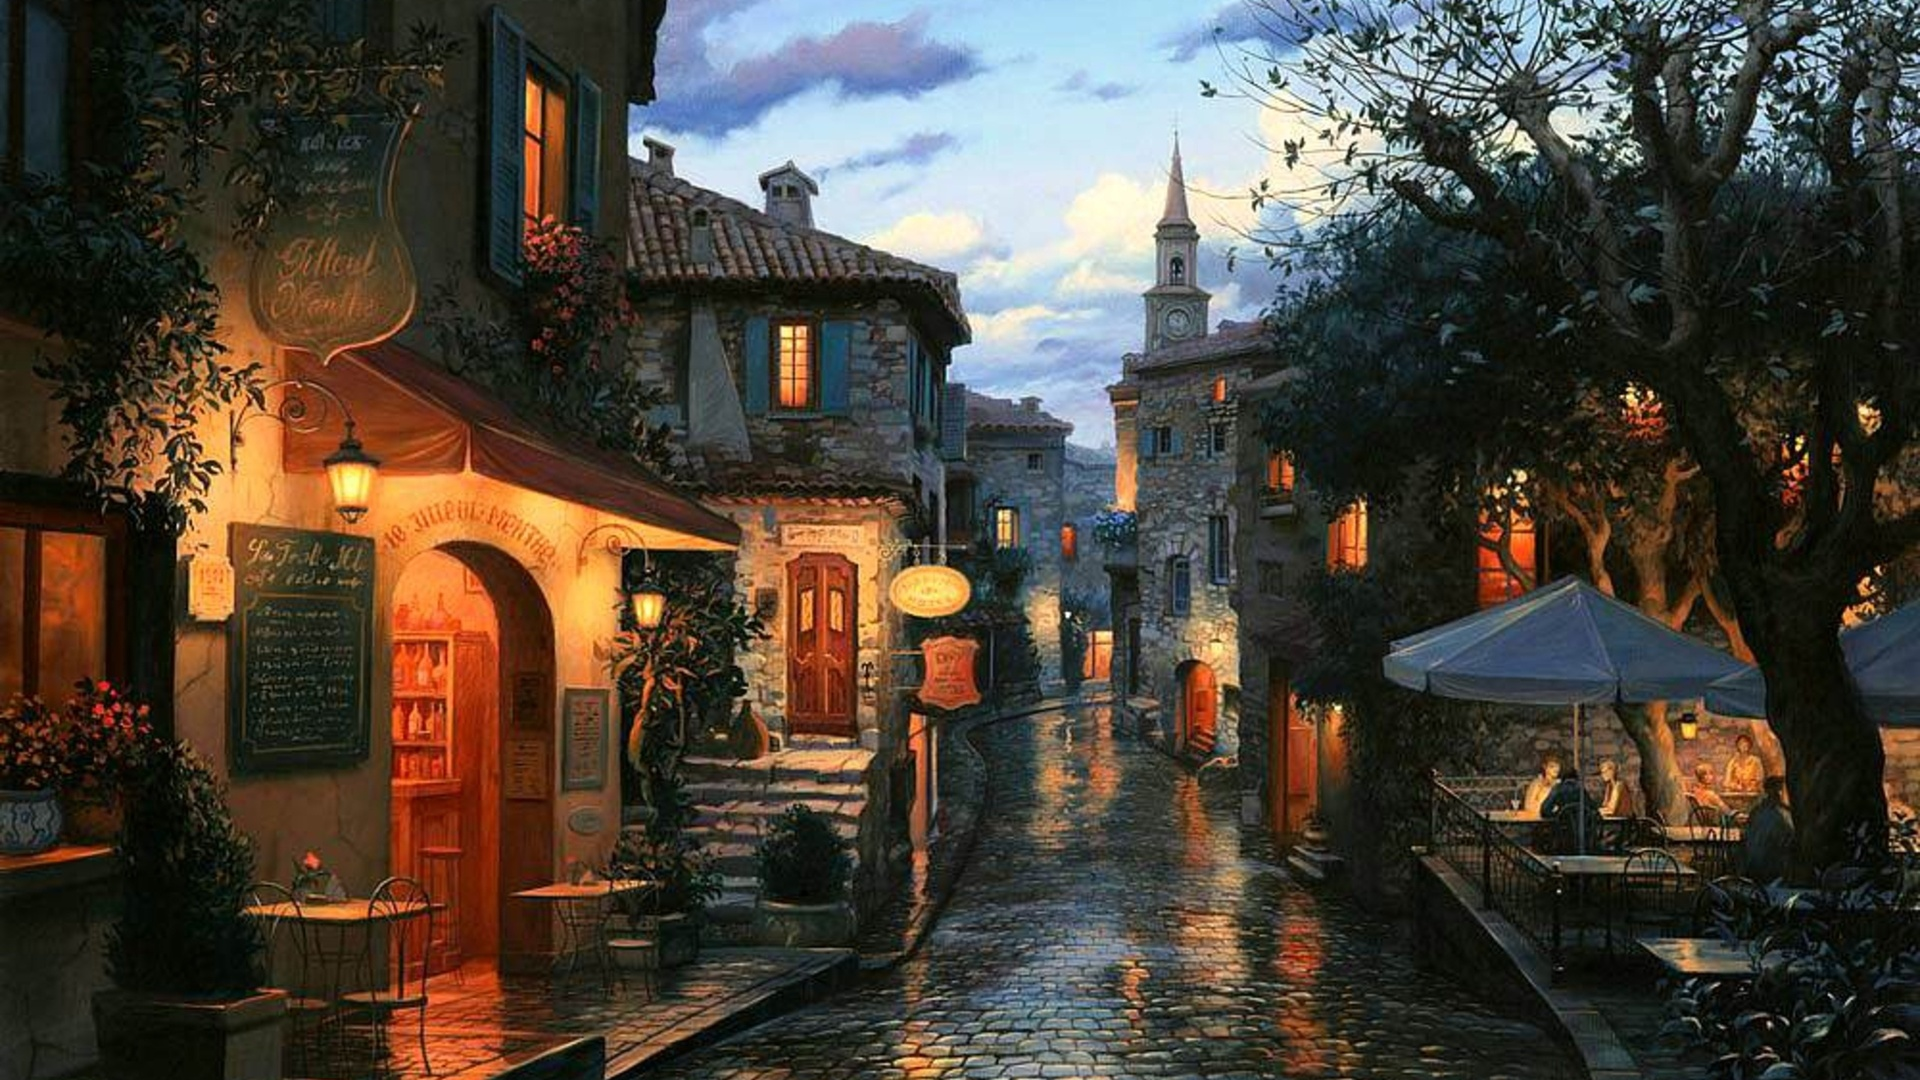 Magic evening, cafe, umbrellas, tables, evening, eugeny lushpin, painting, houses, street, bar